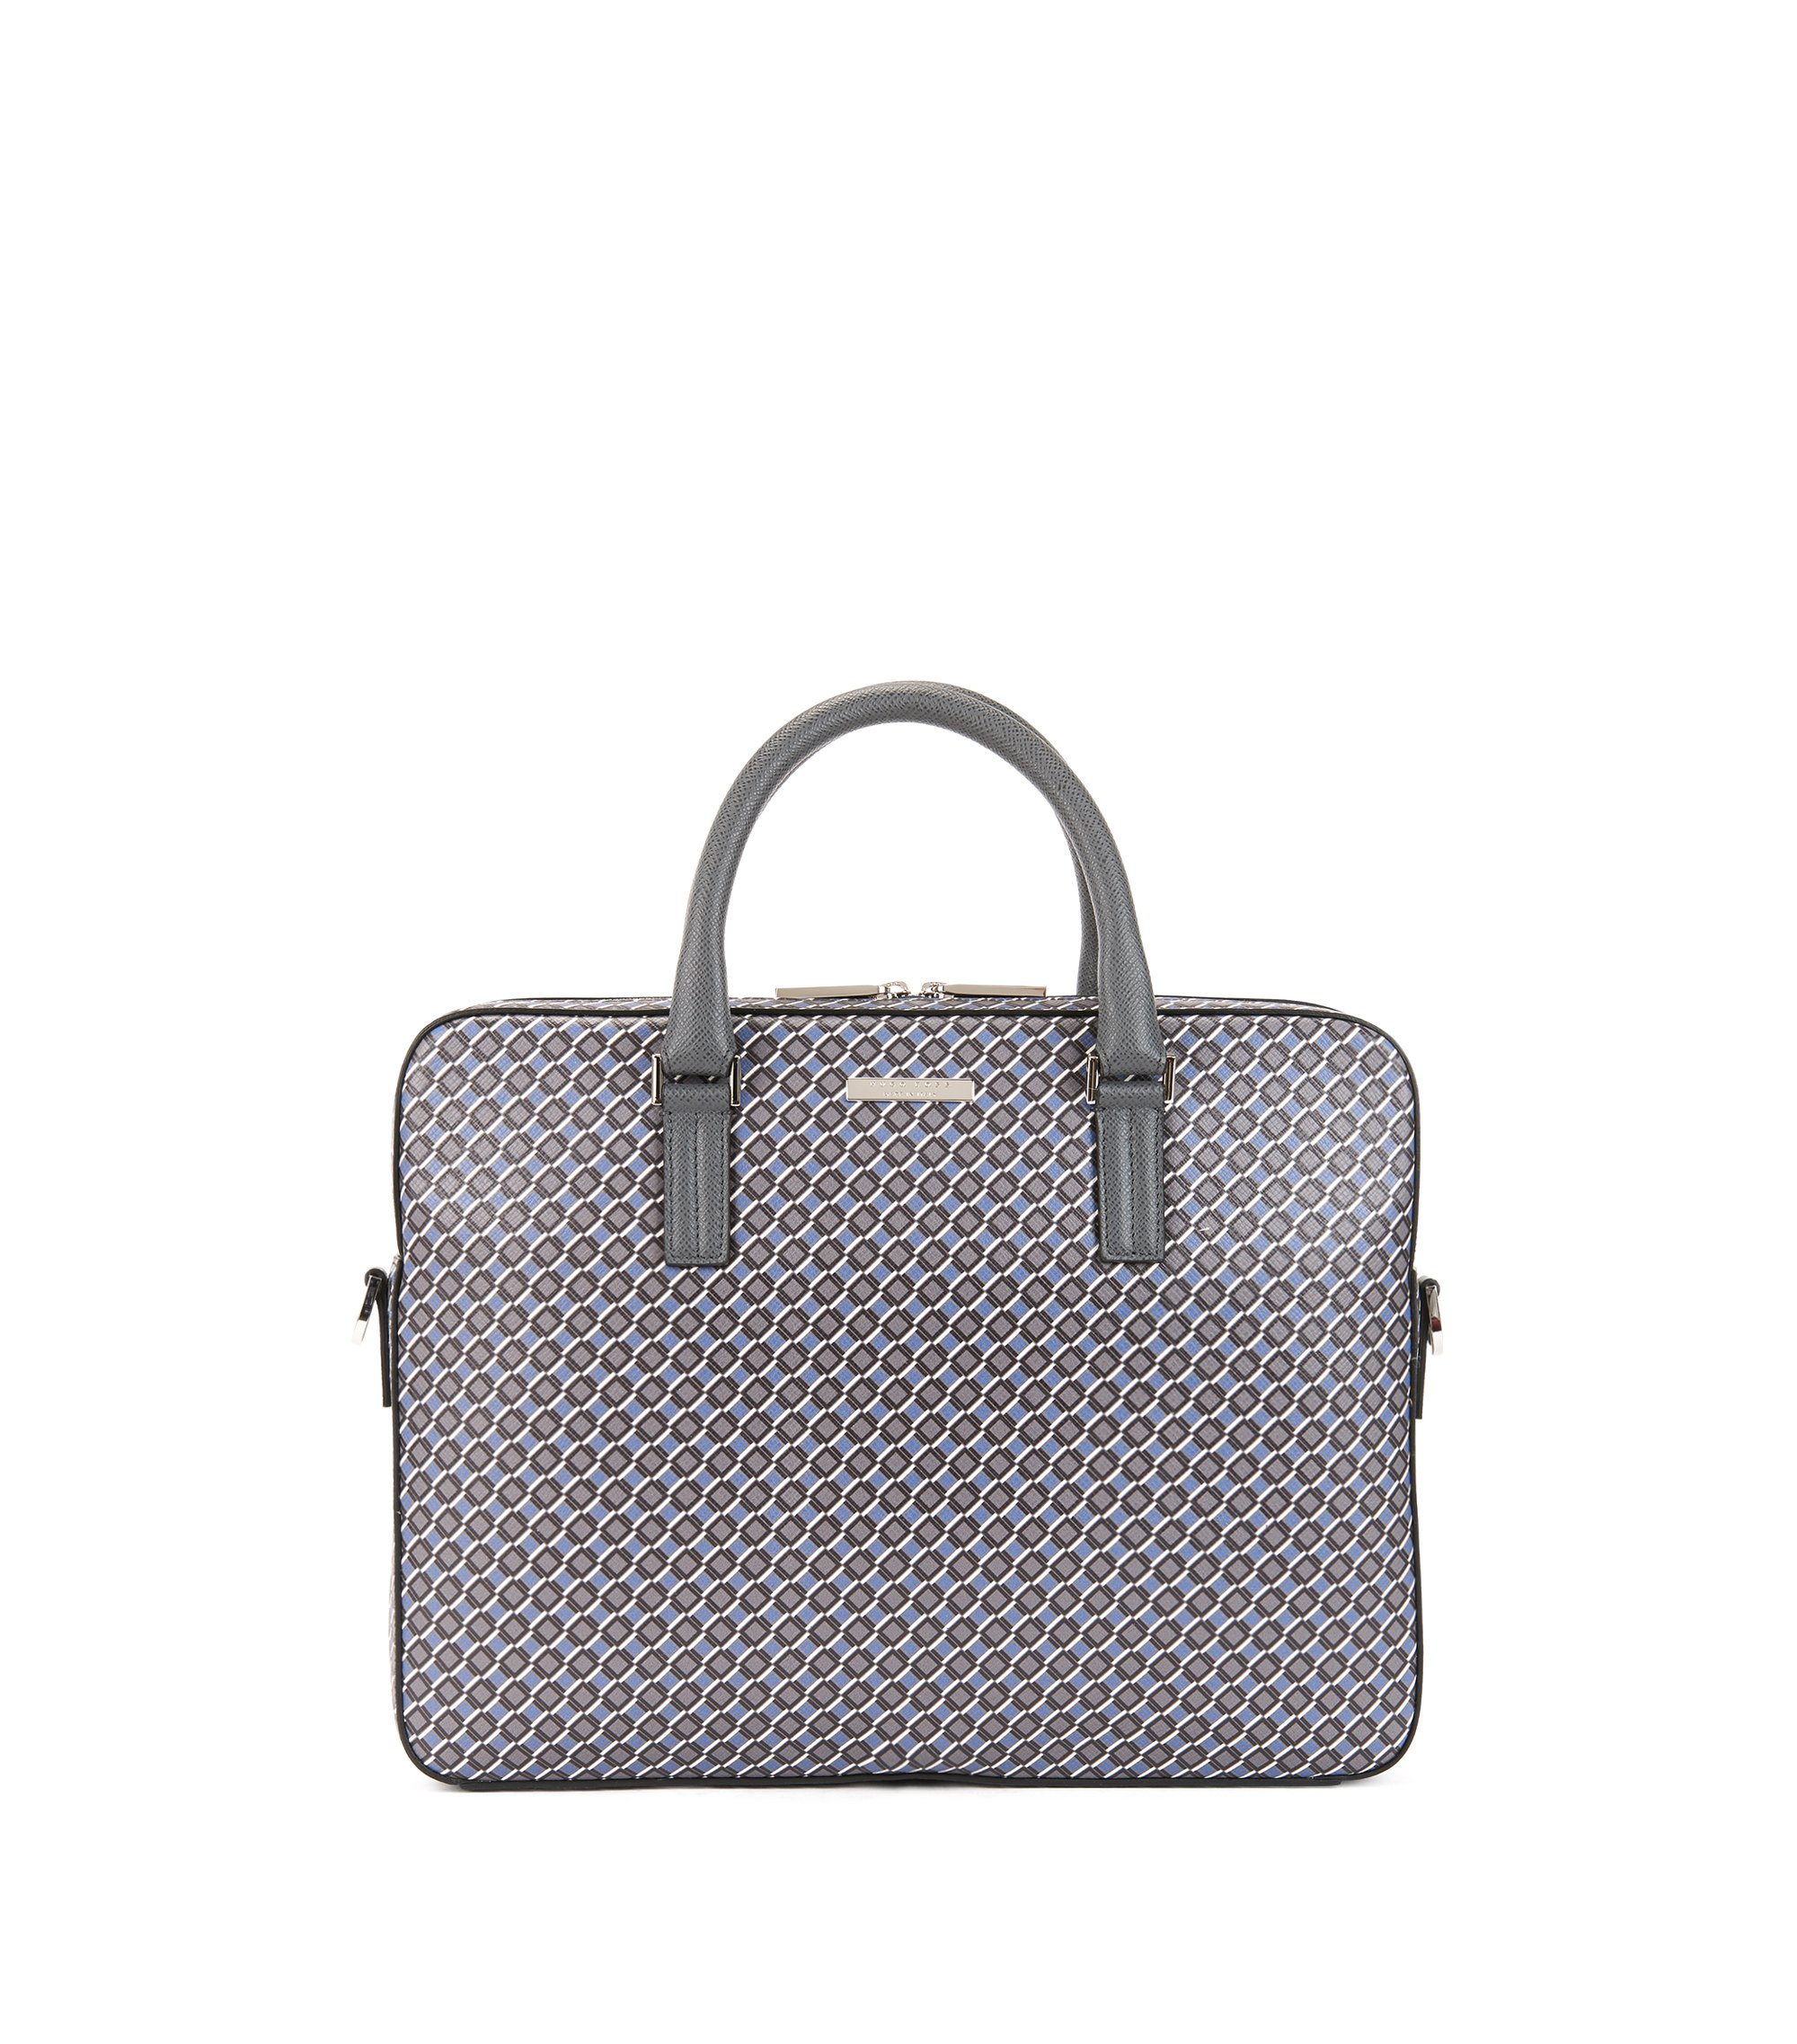 Signature Collection document case in seasonal-printed calfskin leather, Patterned